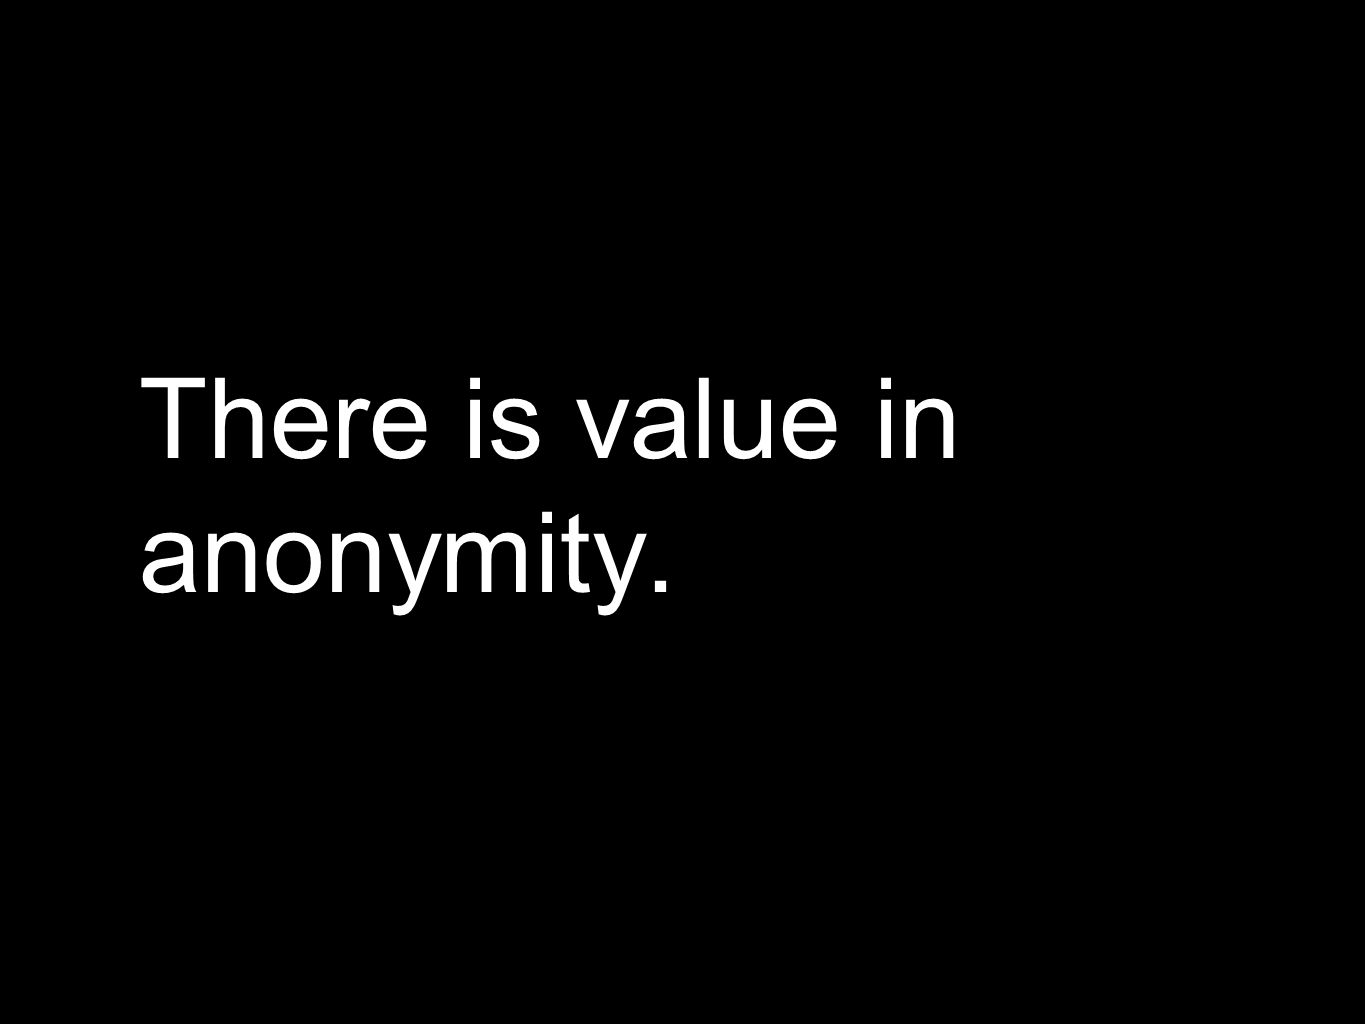 There is value in anonymity.